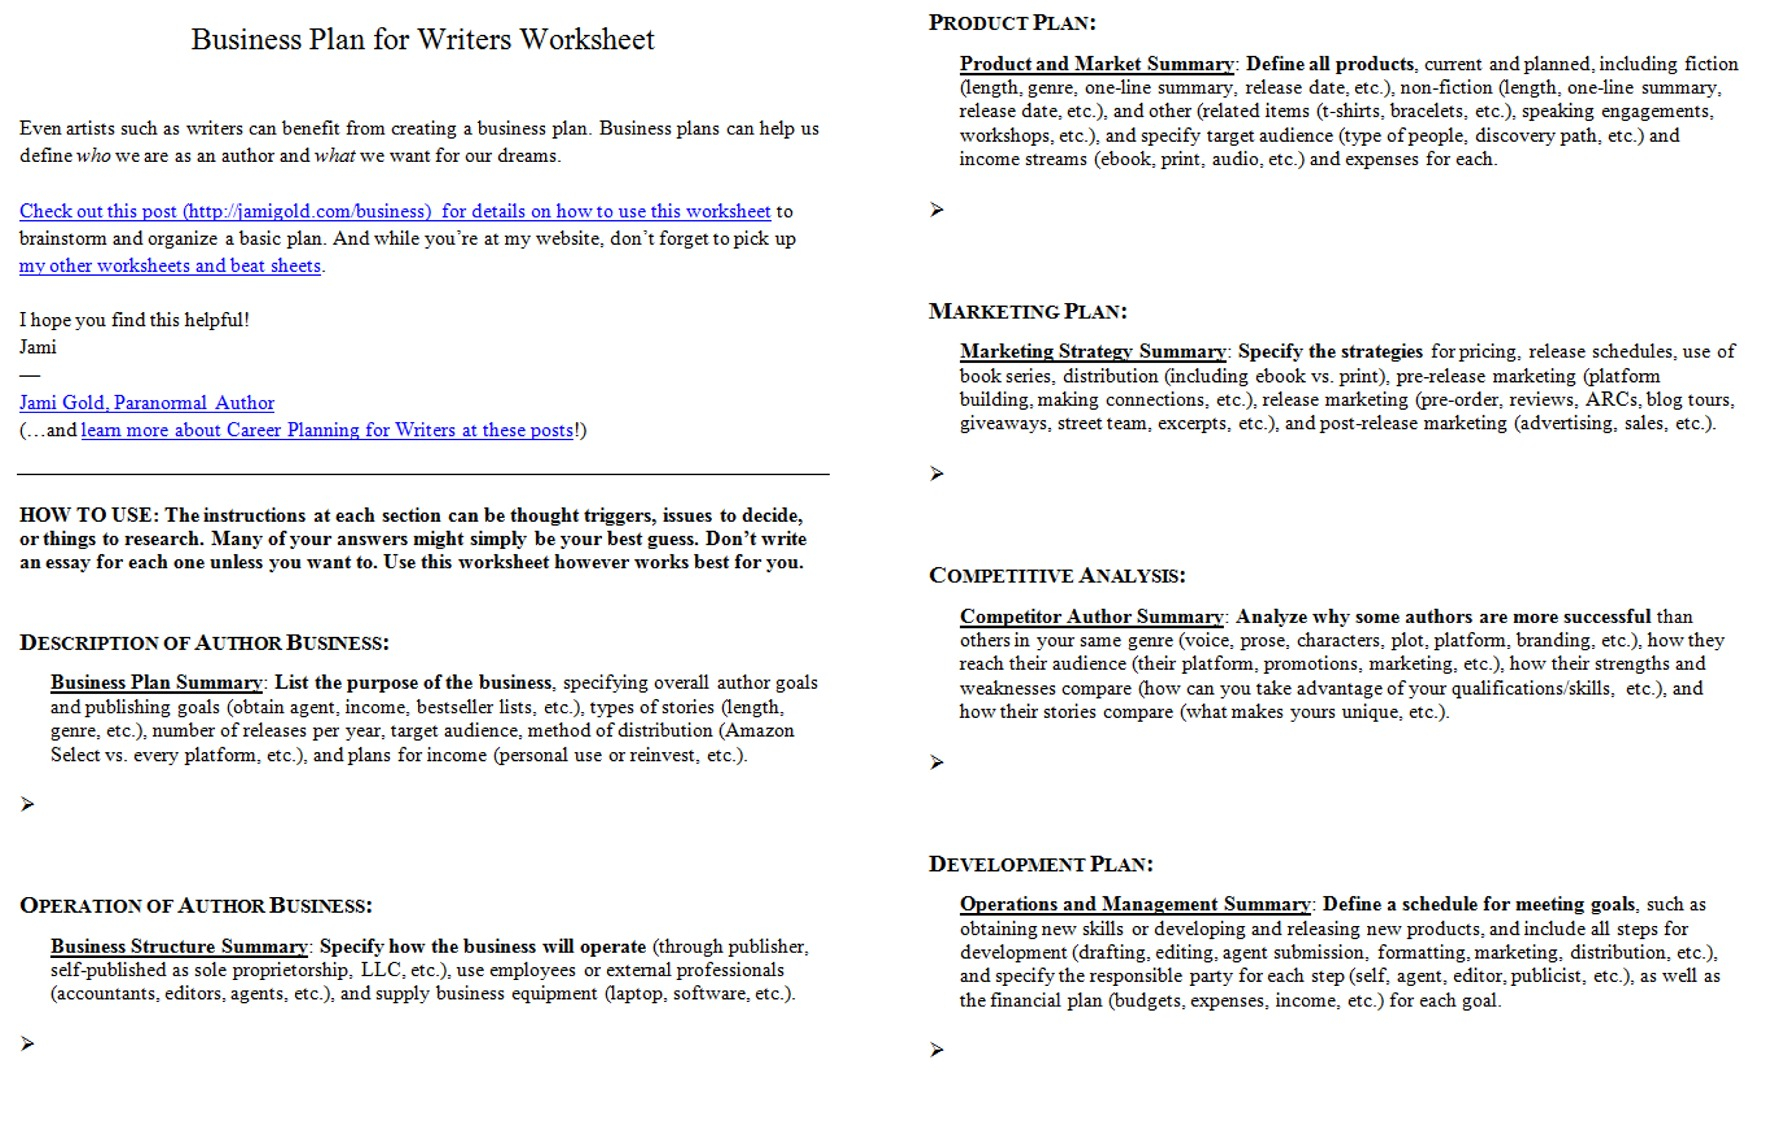 Weirdmailus  Stunning Worksheets For Writers  Jami Gold Paranormal Author With Fascinating Screen Shot Of Both Pages Of The Business Plan For Writers Worksheet With Awesome Genres Worksheet Also Prentice Hall Biology Chapter  Worksheets In Addition Learning To Write Worksheets For Kindergarten And Character Building Worksheet As Well As Finding Common Denominator Worksheets Additionally Grade  Science Worksheets From Jamigoldcom With Weirdmailus  Fascinating Worksheets For Writers  Jami Gold Paranormal Author With Awesome Screen Shot Of Both Pages Of The Business Plan For Writers Worksheet And Stunning Genres Worksheet Also Prentice Hall Biology Chapter  Worksheets In Addition Learning To Write Worksheets For Kindergarten From Jamigoldcom